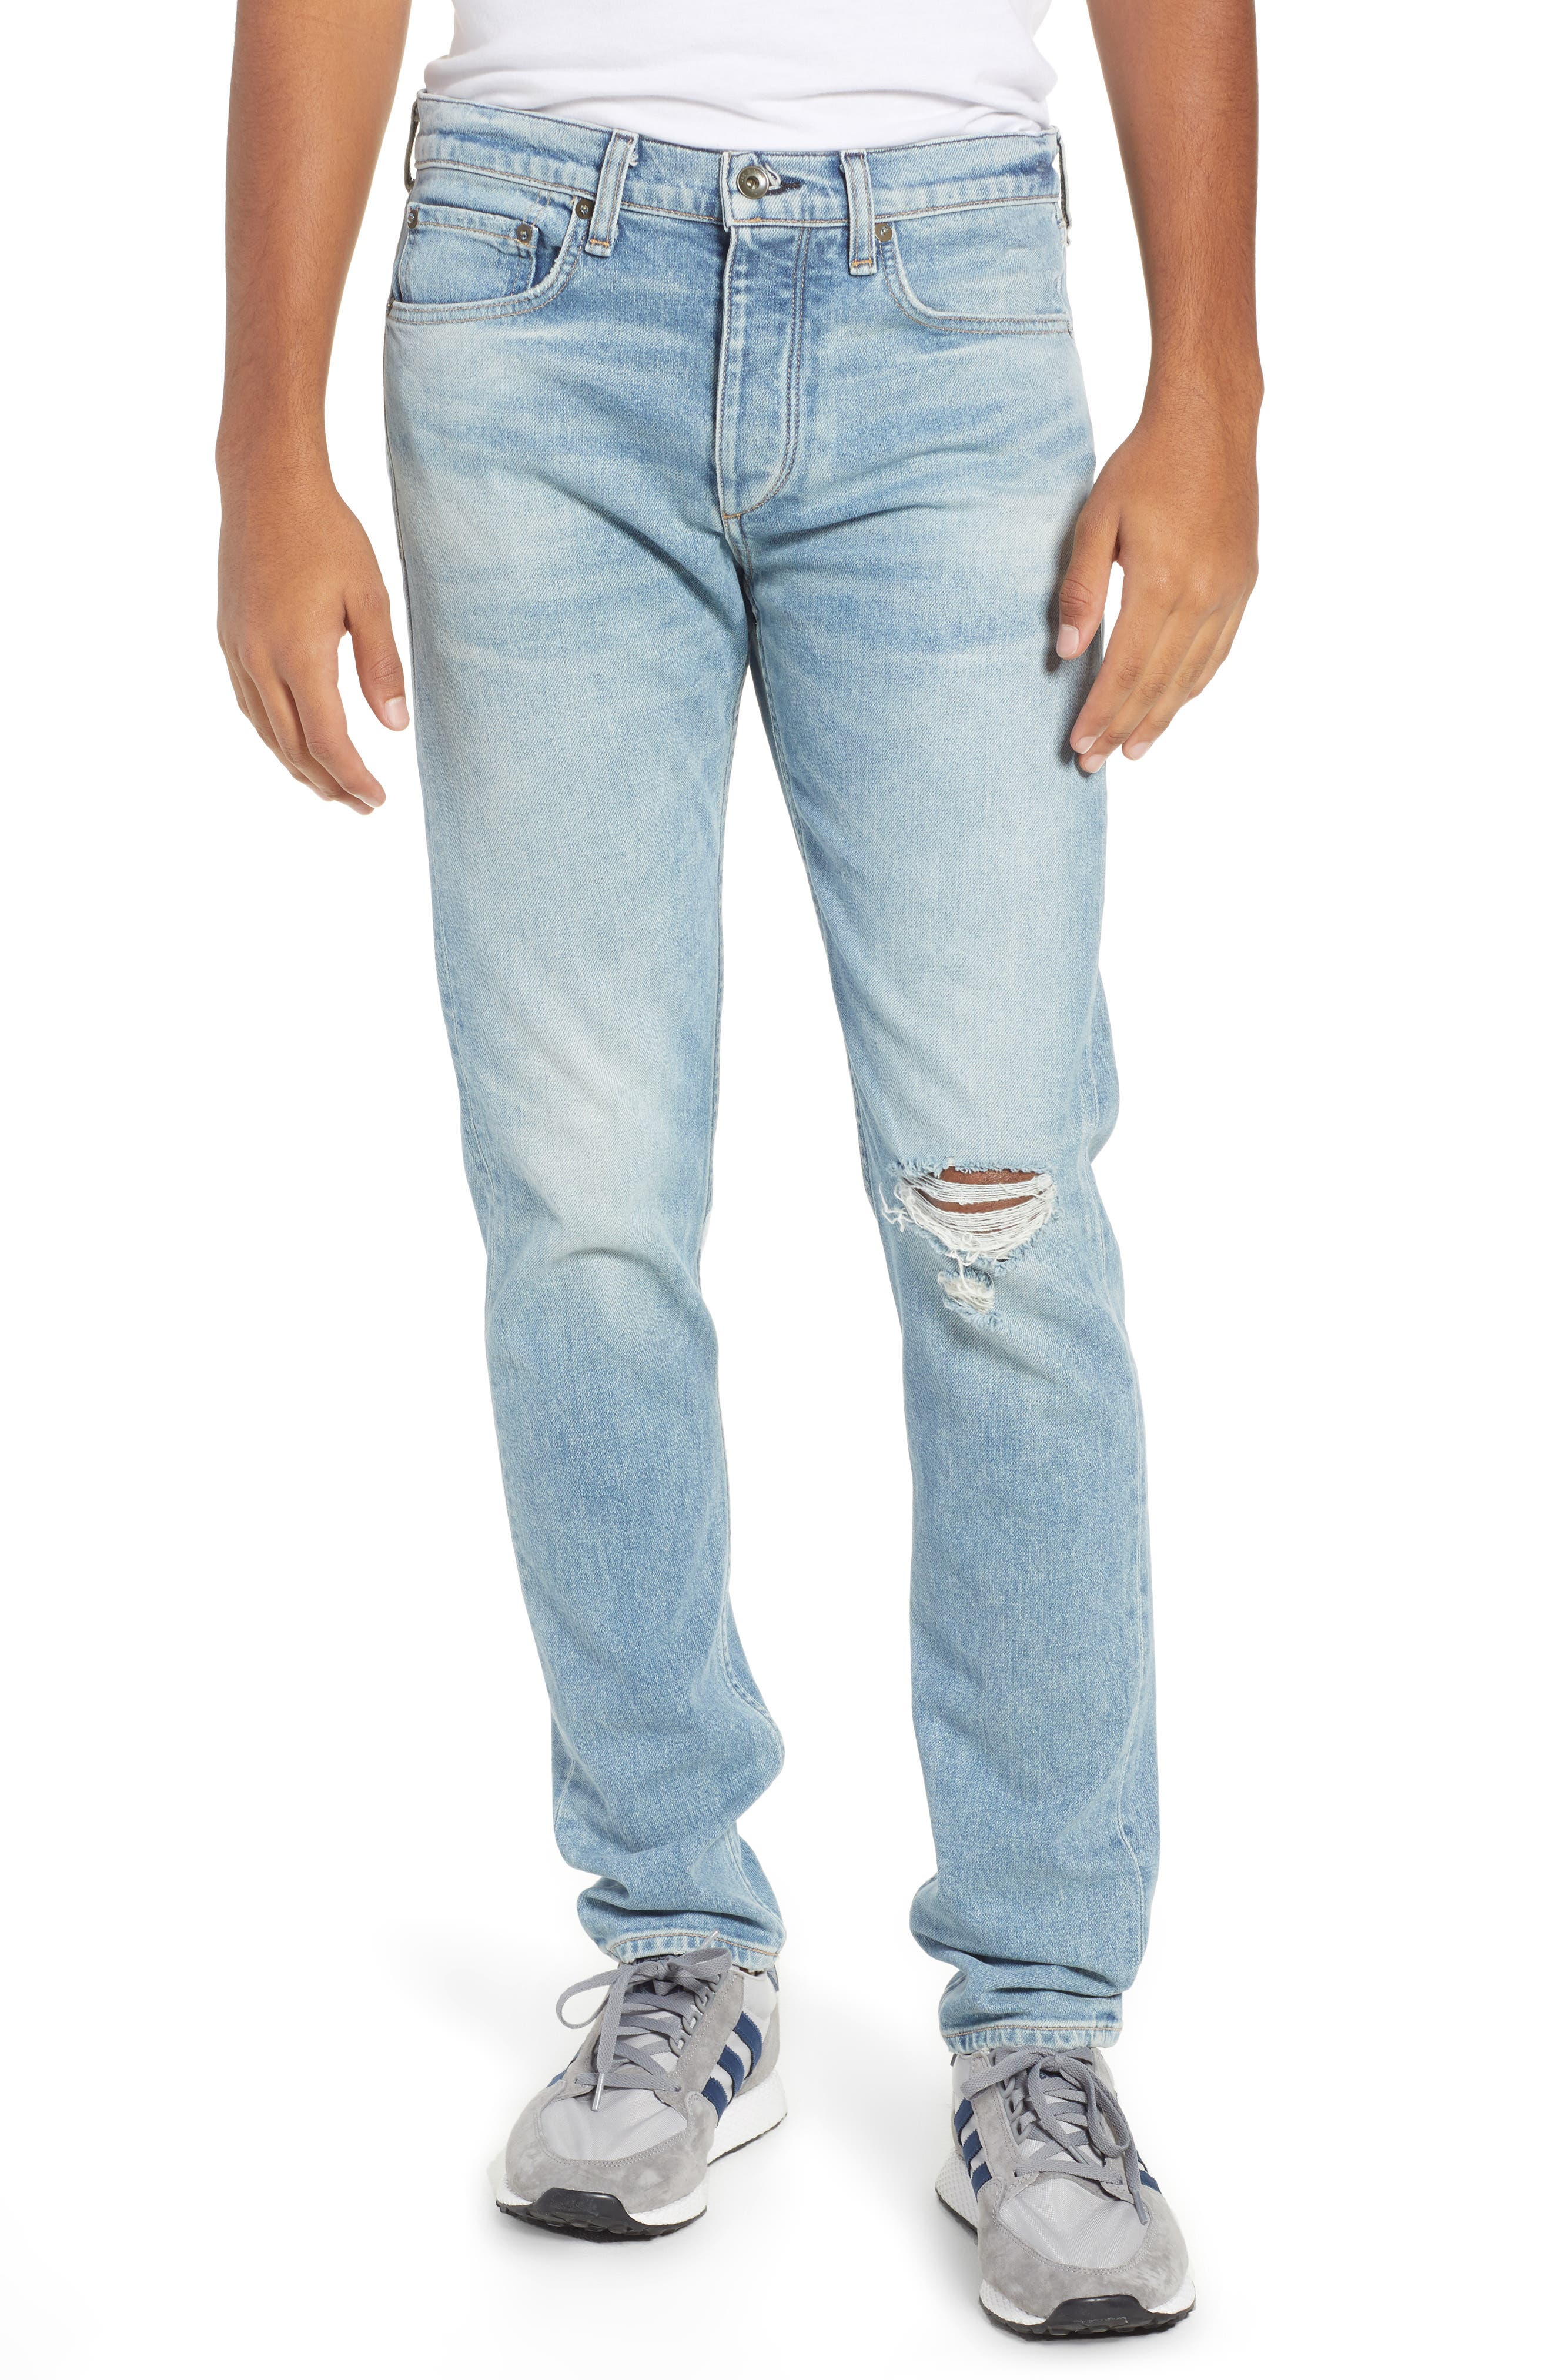 Fit 2 Slim Fit Jeans,                         Main,                         color, JAMIE WITH HOLES